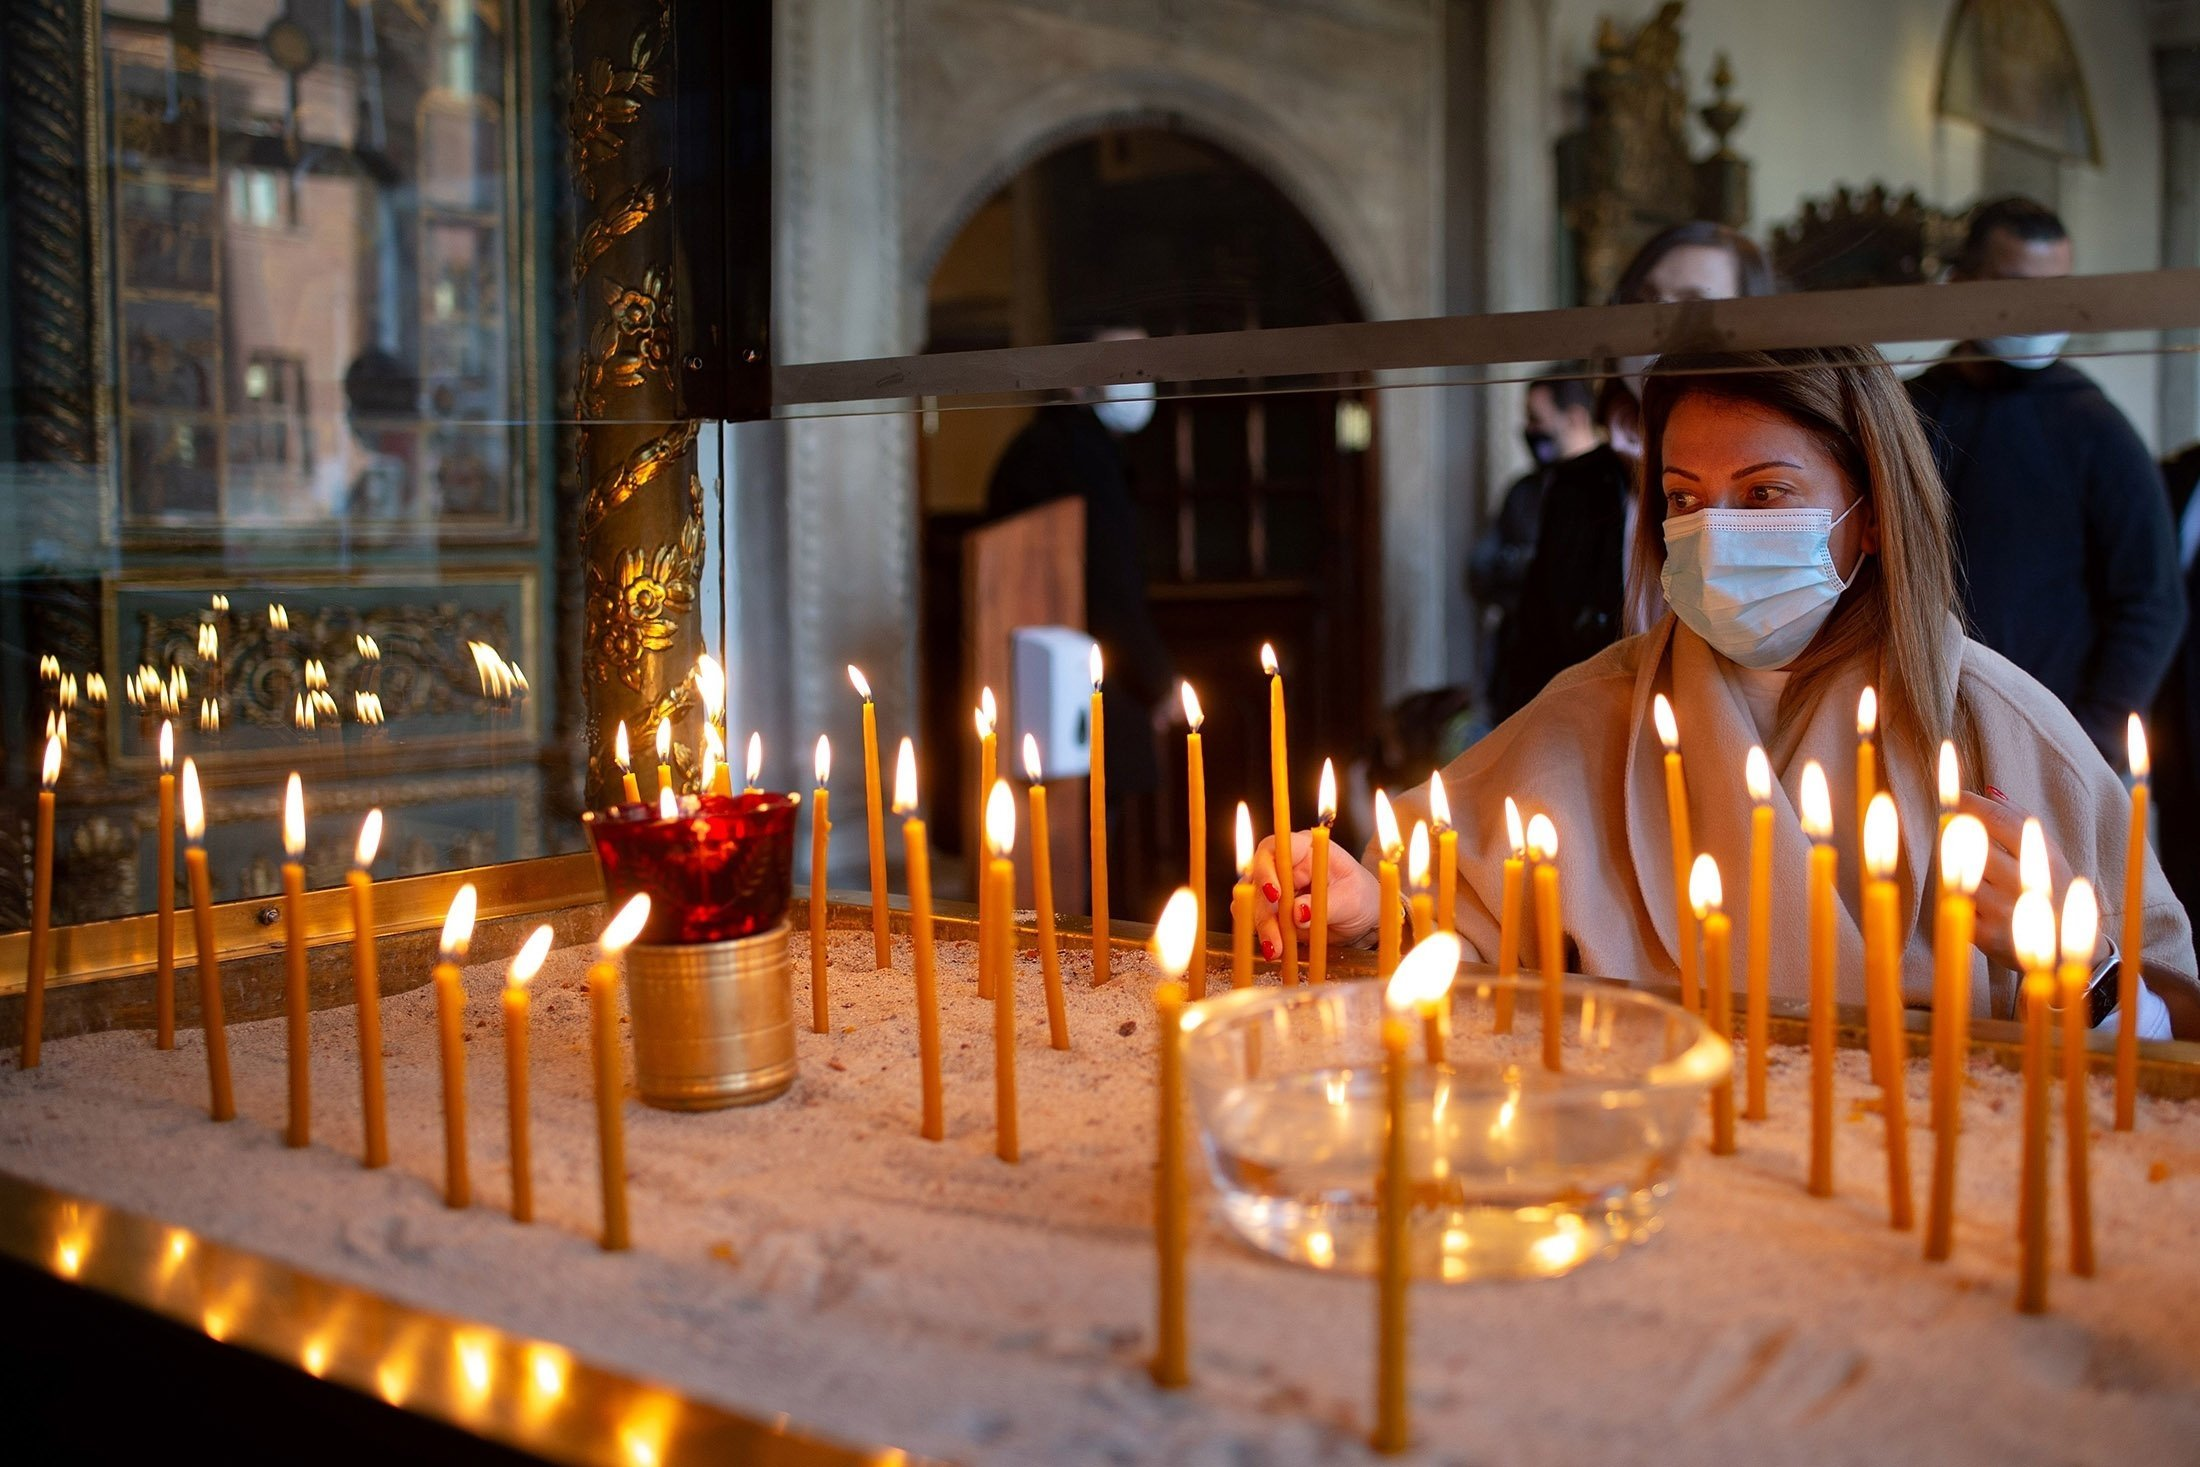 An Orthodox worshipper lights a candle during the Epiphany celebrations at the Patriarchal Church of Saint George amid the spread of COVID-19, in Istanbul, Turkey, Jan. 6, 2021.